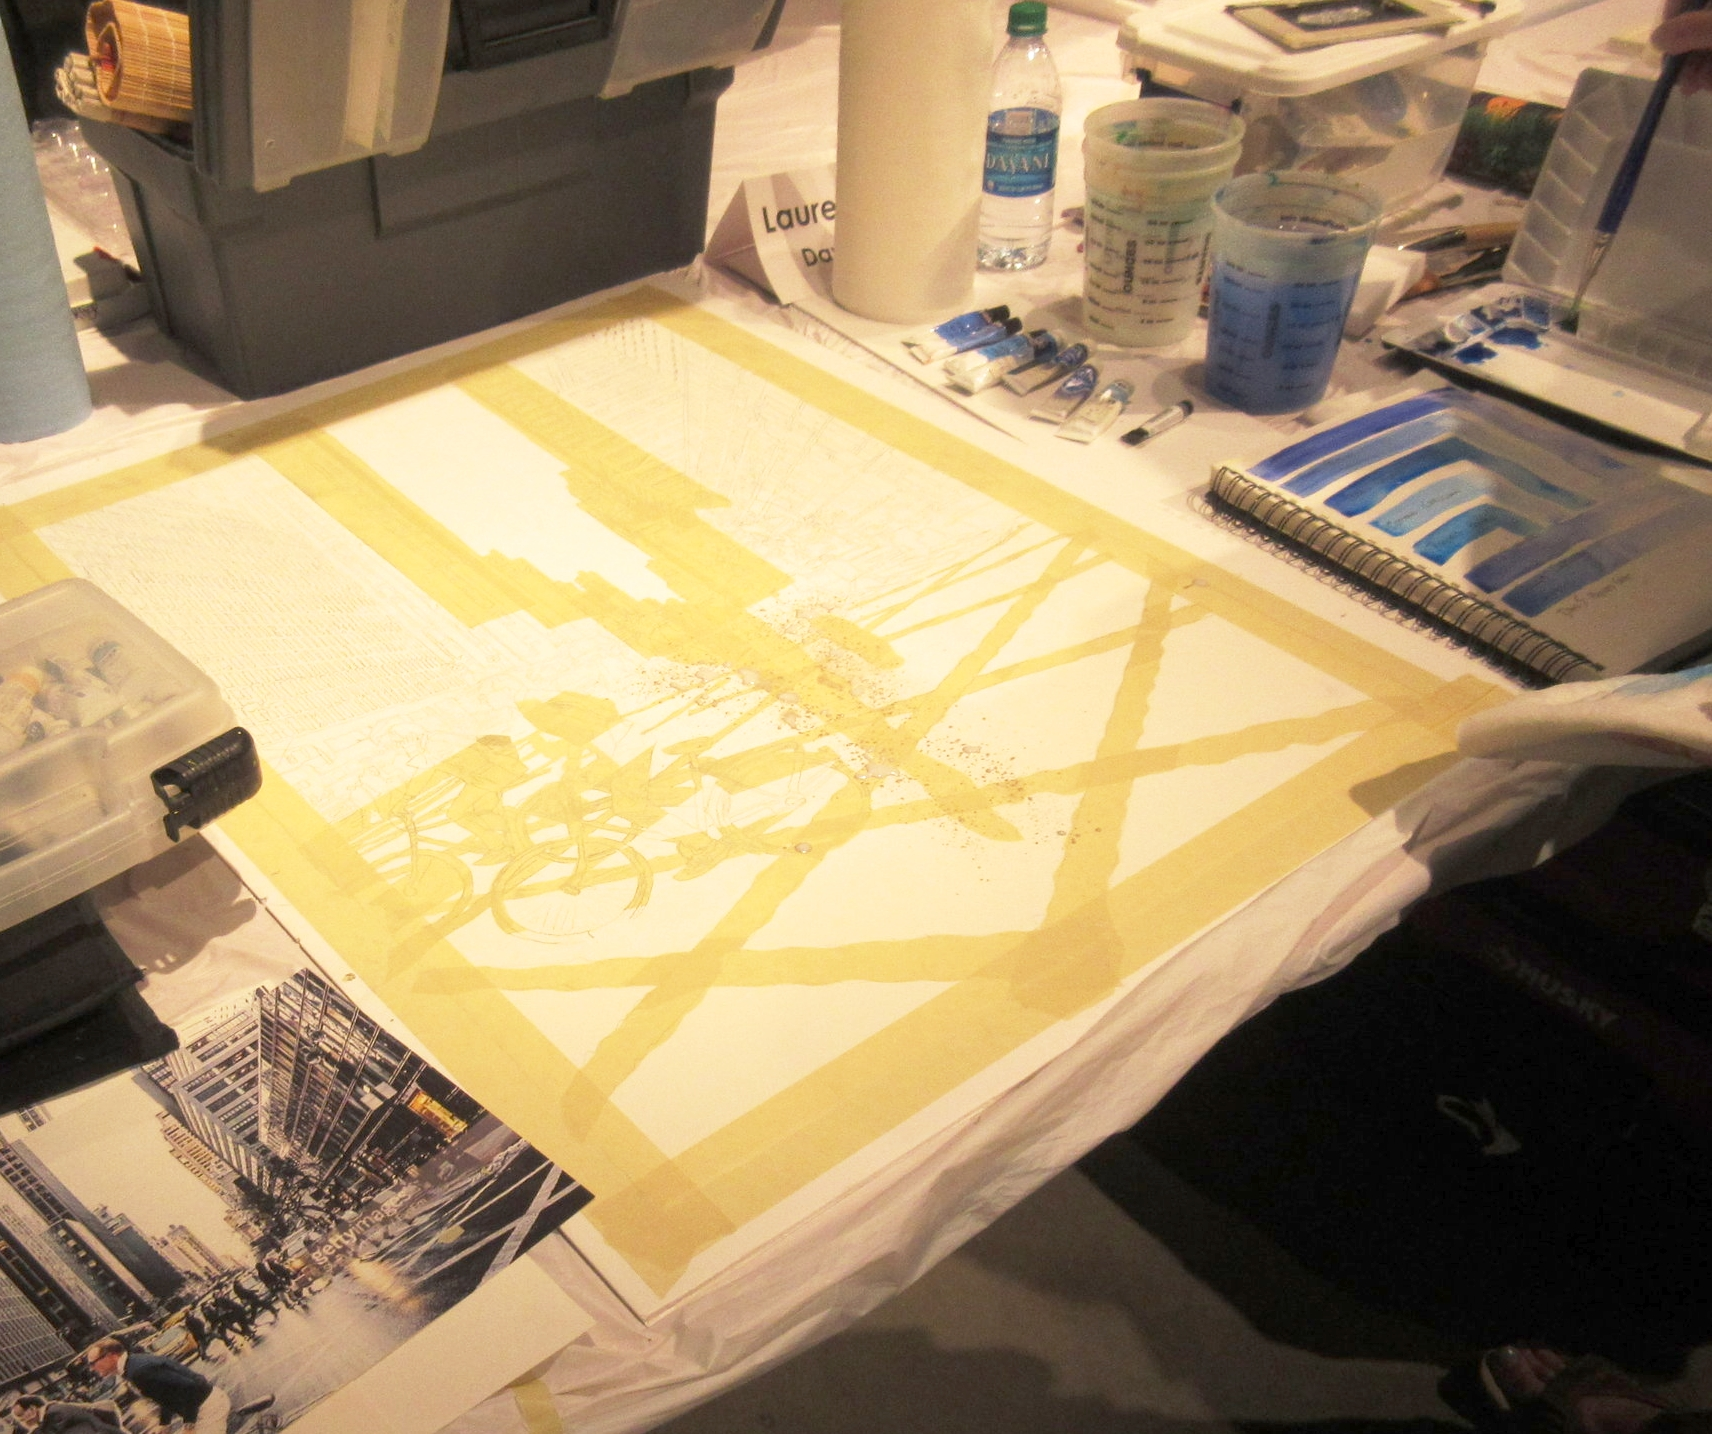 Before paint is applied to the paper, masking tape blocks out the spaces the artist doesn't want color.